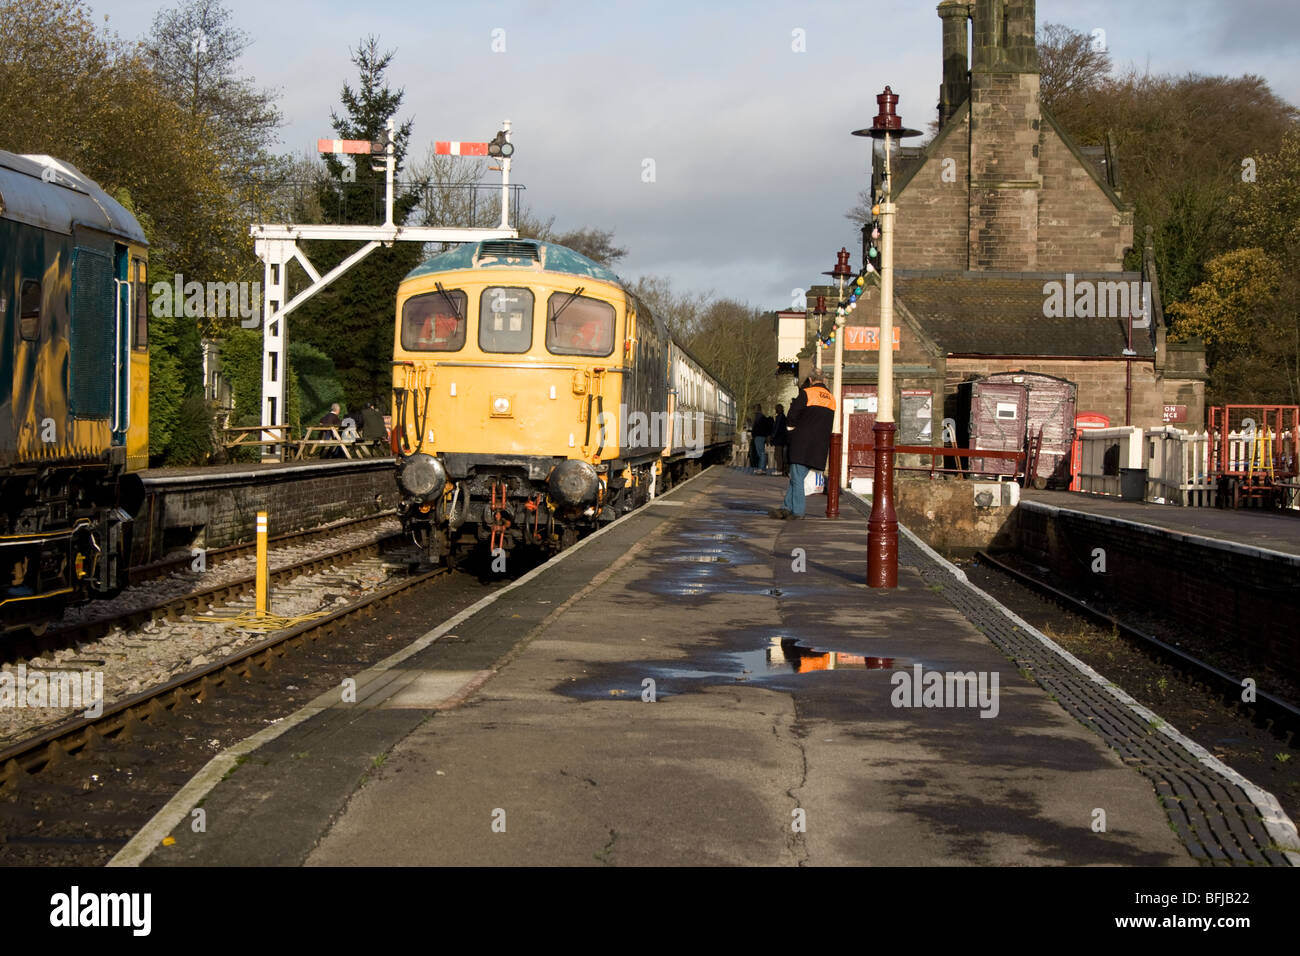 Class 33 diesel locomotive preparing to leave Cheddleton station - Stock Image